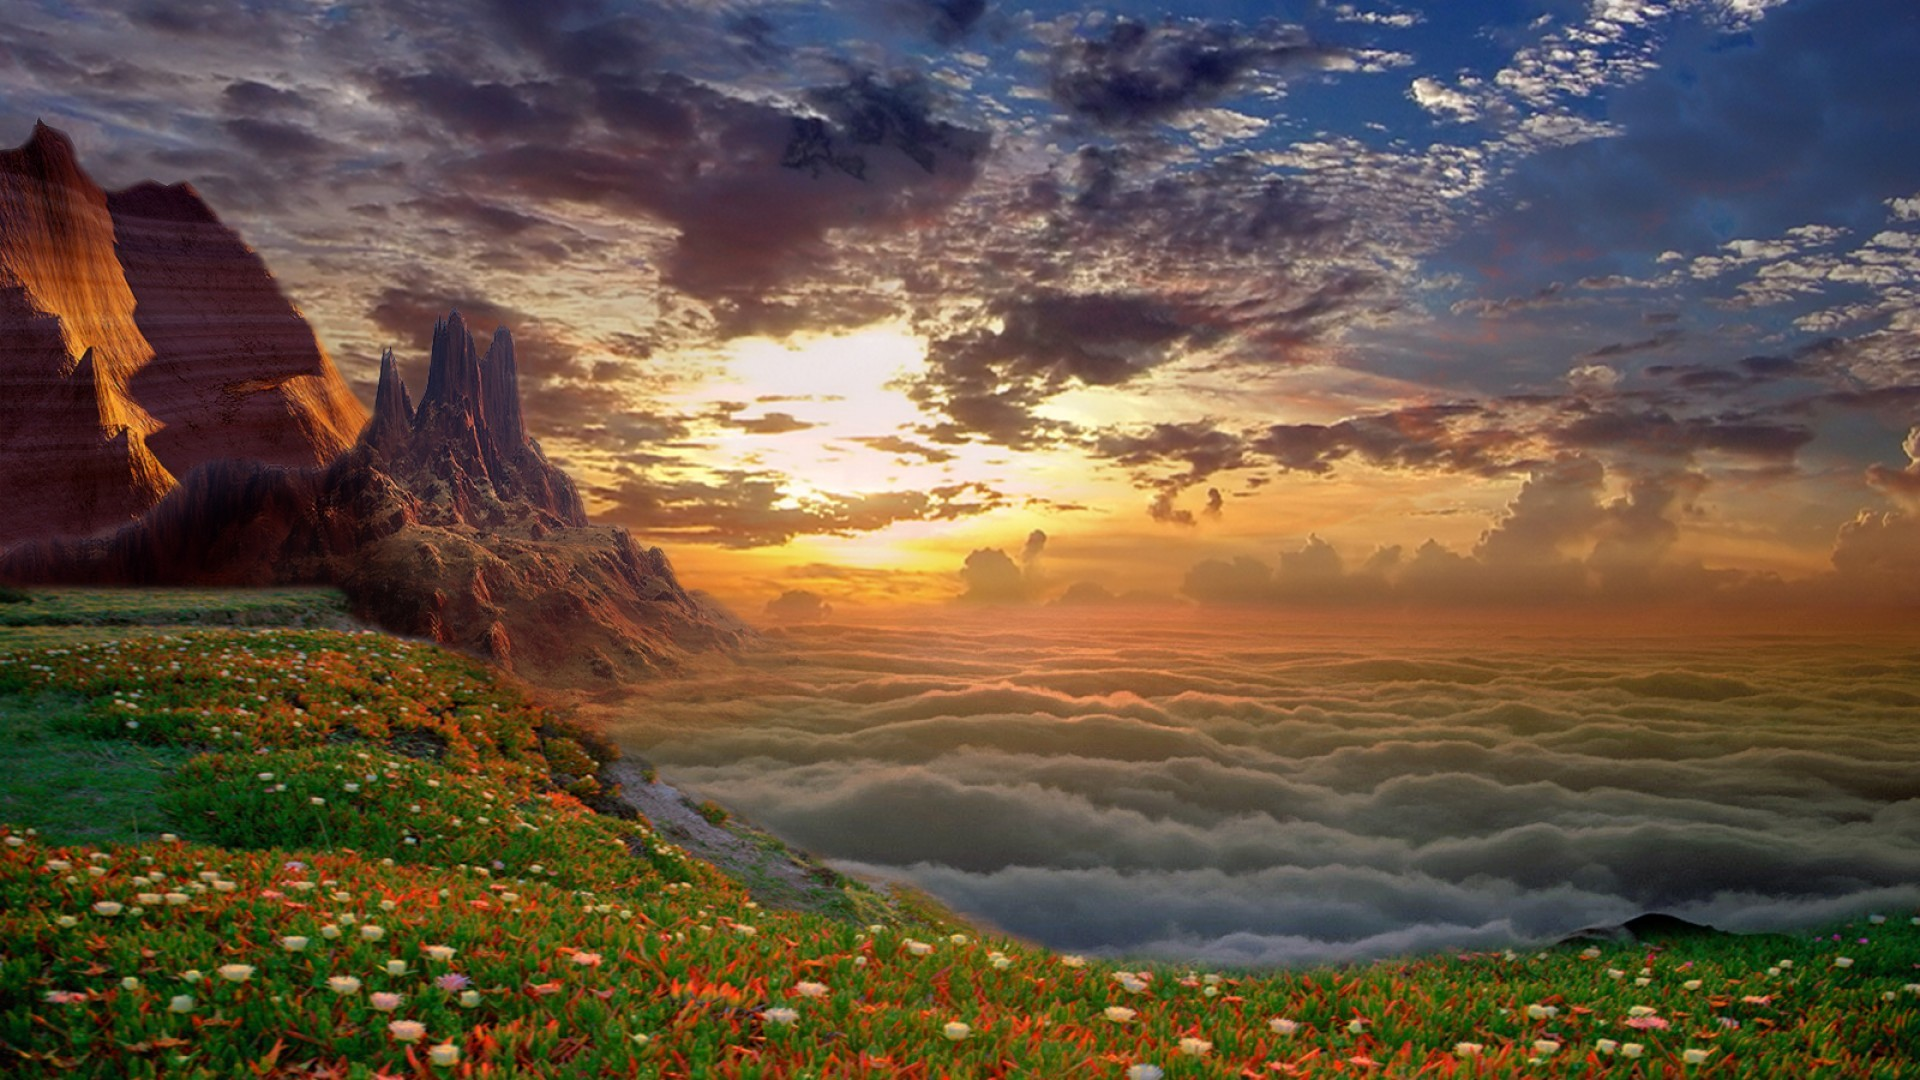 Fantasy - Landscape  Wallpaper